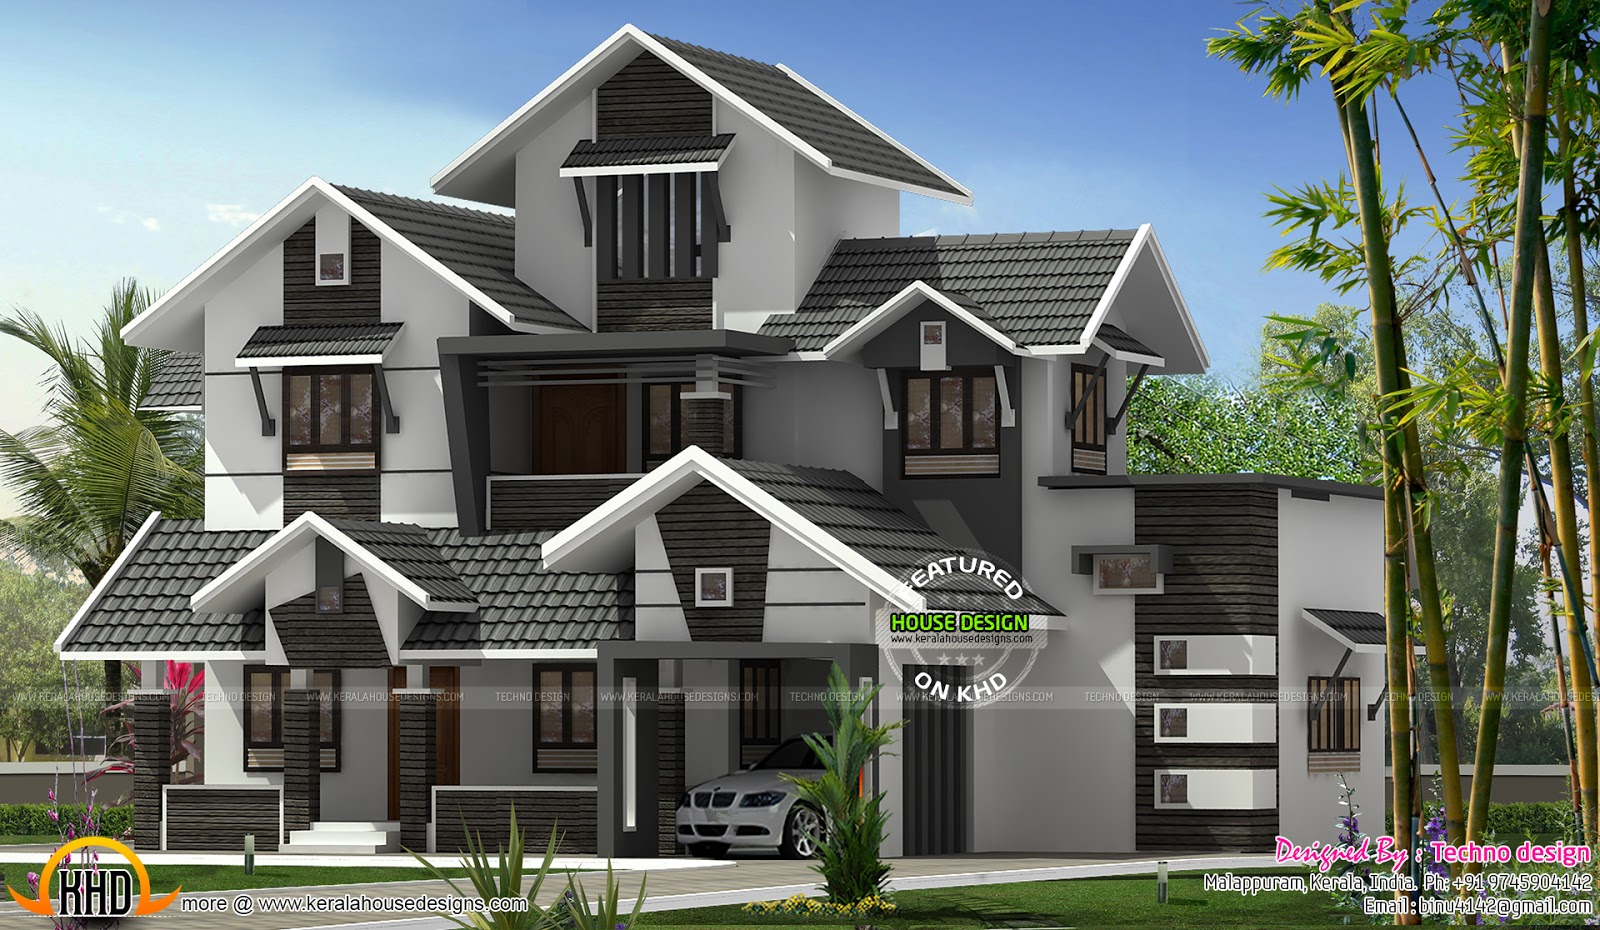 Modern kerala home design kerala home design and floor plans for Kerala home plan